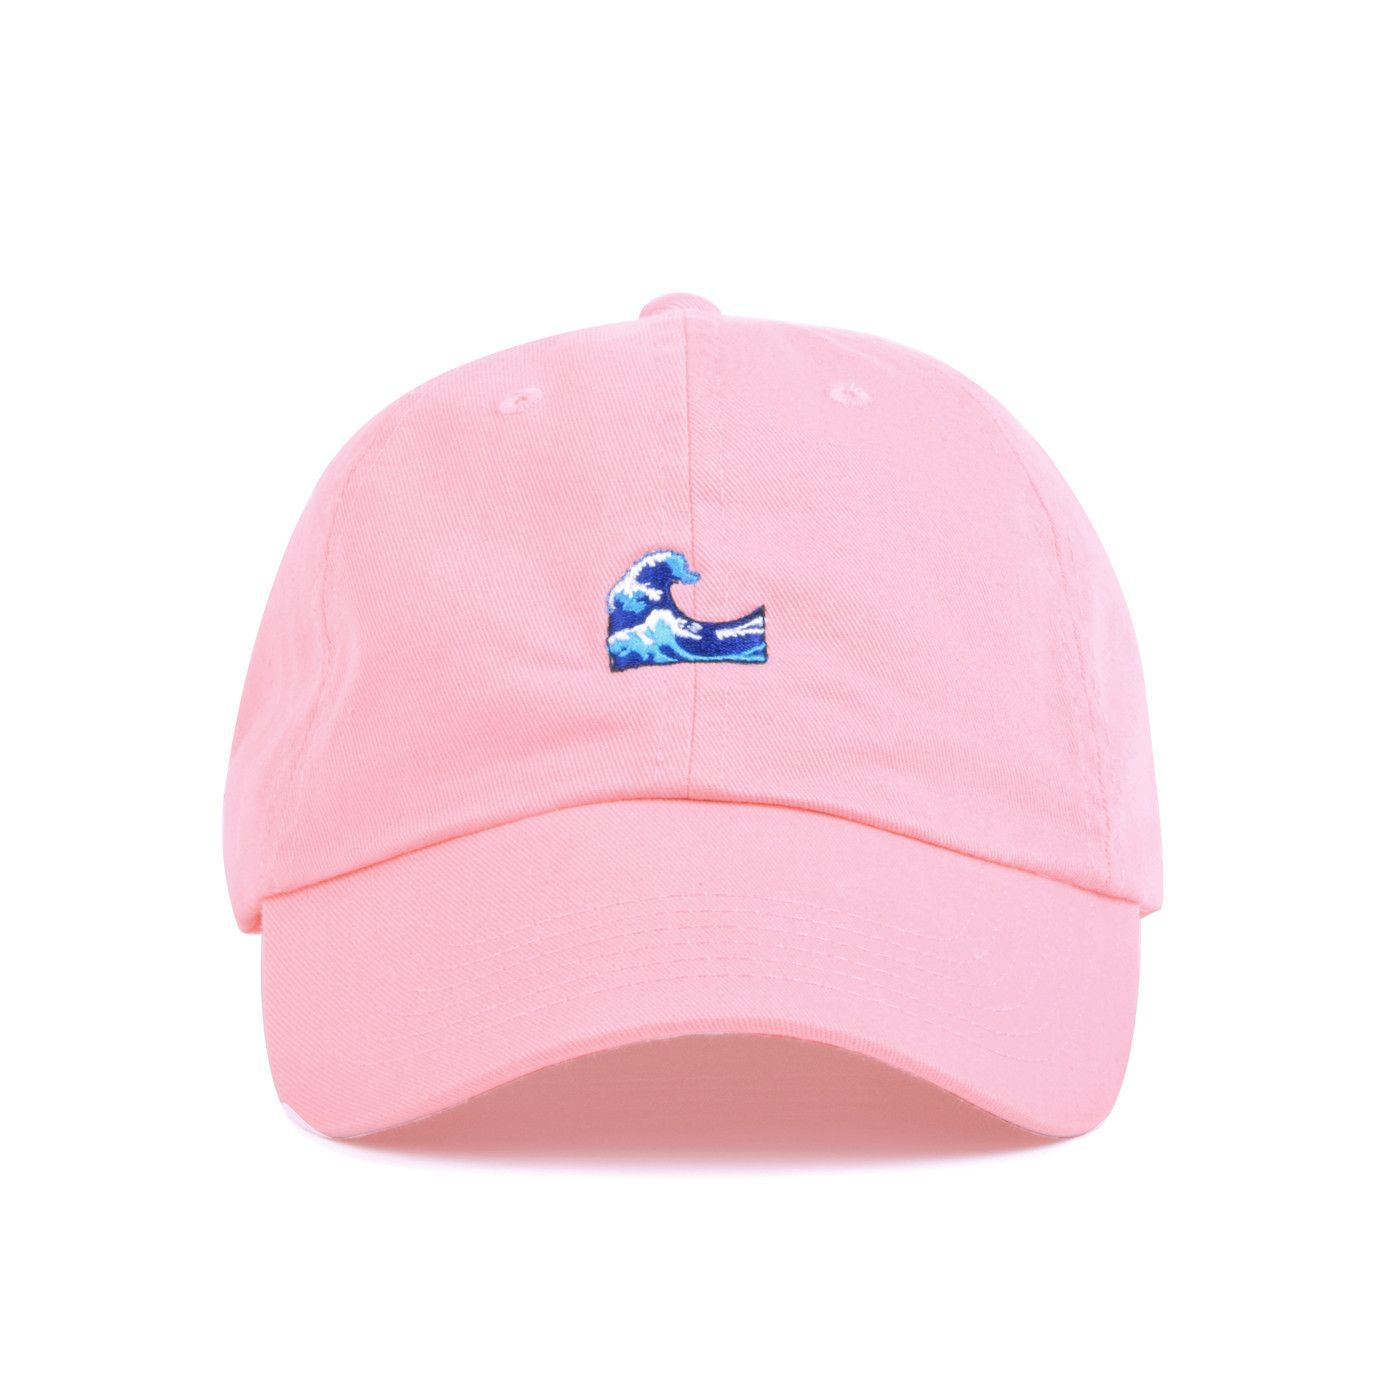 A 100 Soft Cotton Strapback Hat With Low Profile Build And Metal Buckle Featuring The Wave Emoji Embroidery Offered In Li Cute Hats Dad Hats Strapback Hats